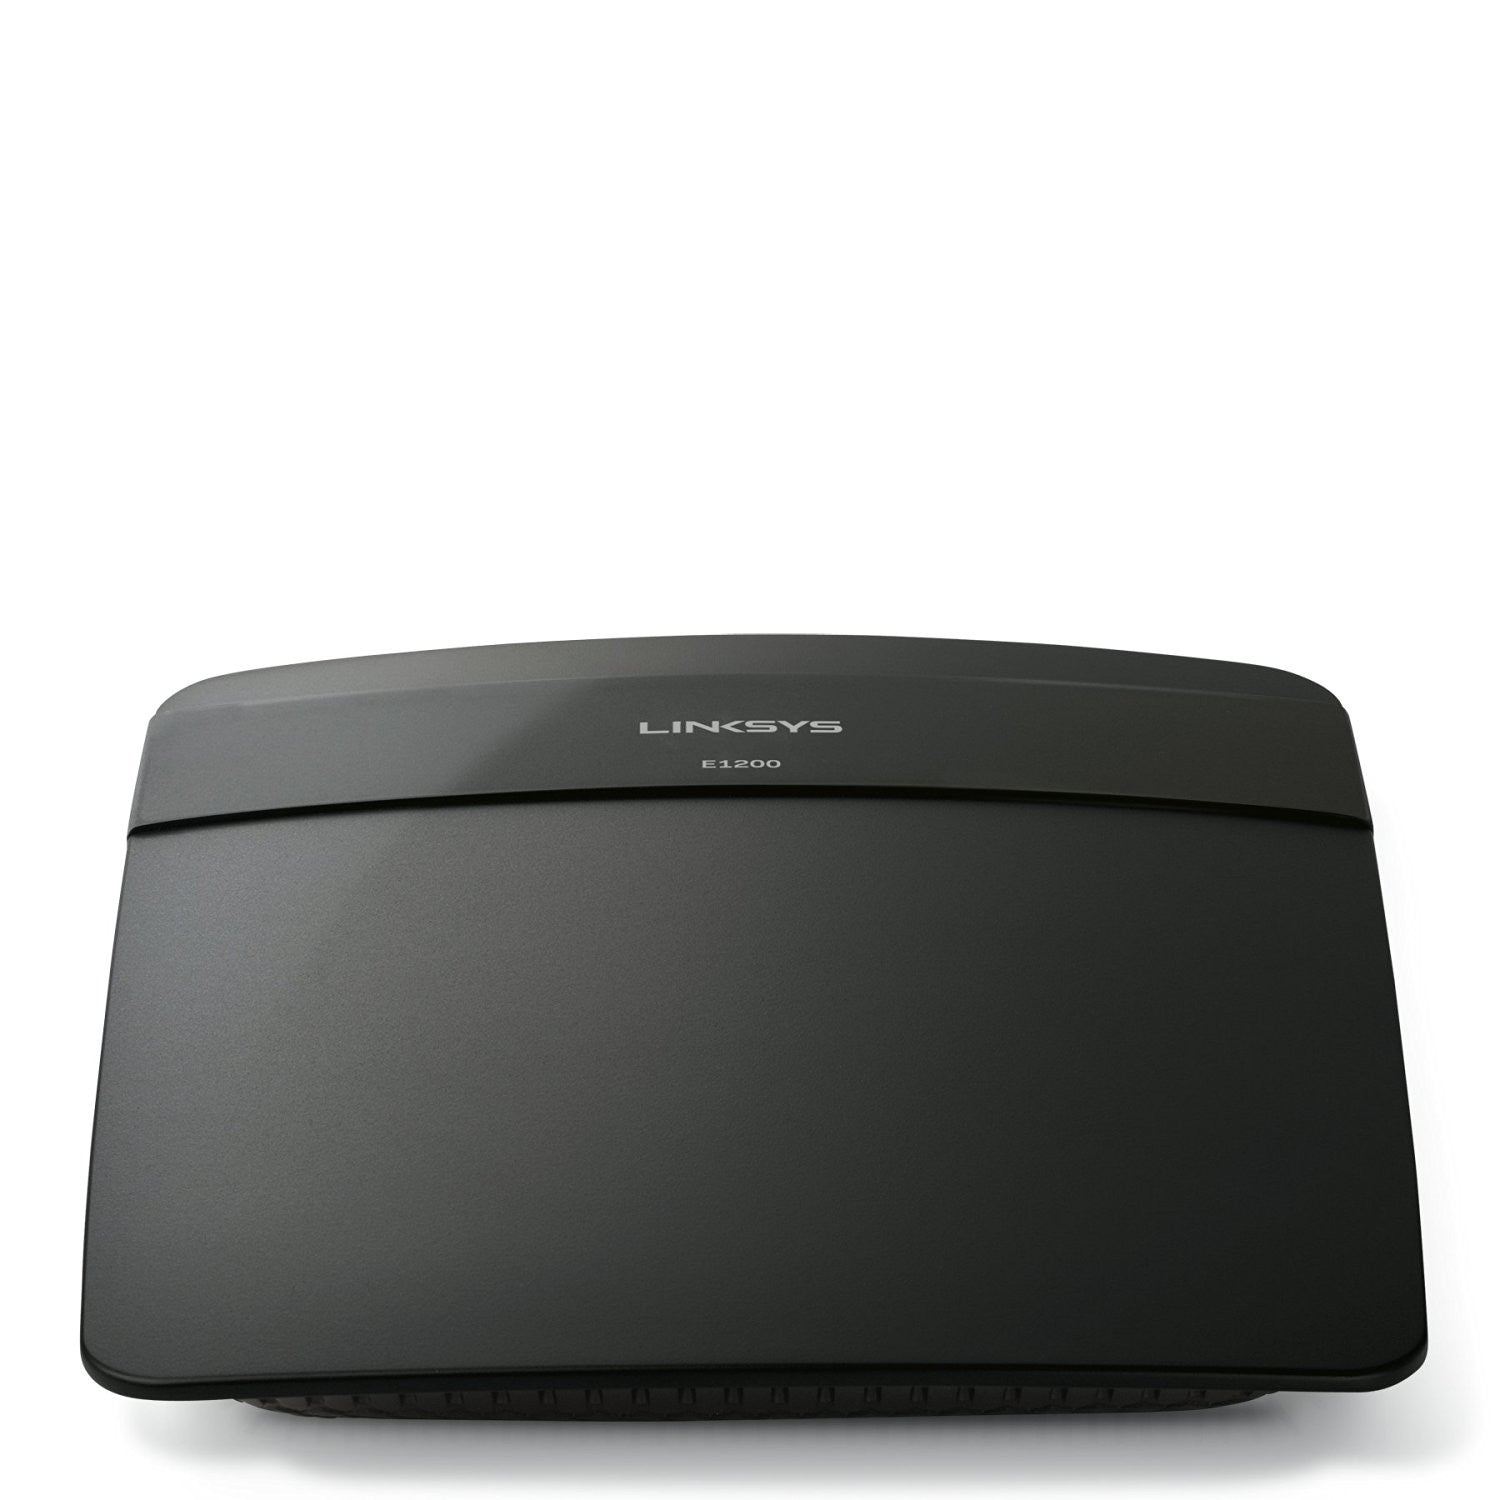 Overplay Vpn Router Linksys N300 Flashed Tomato Router Vpn